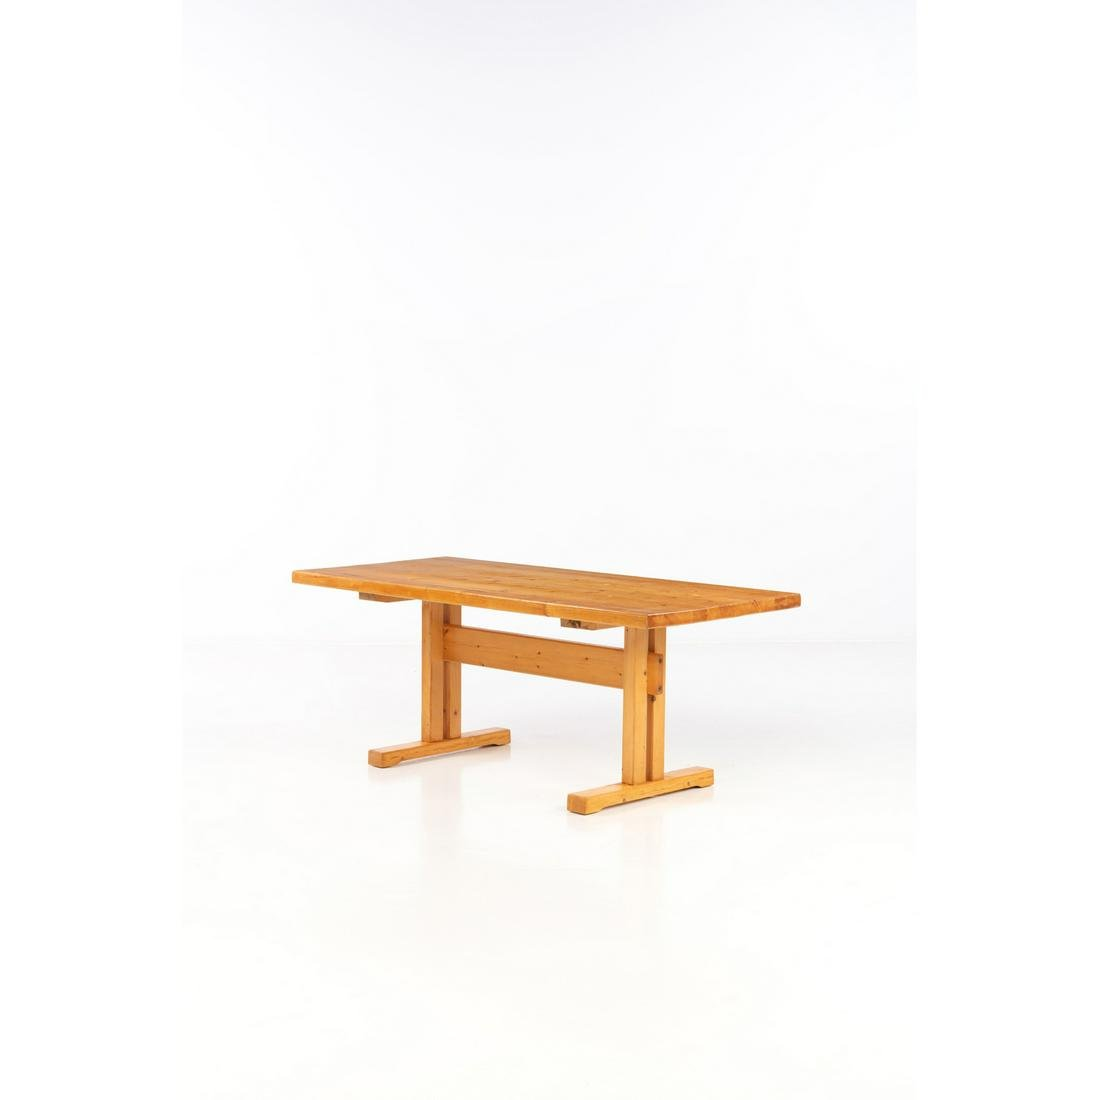 Charlotte Perriand (1903-1999) Table Pine Creation